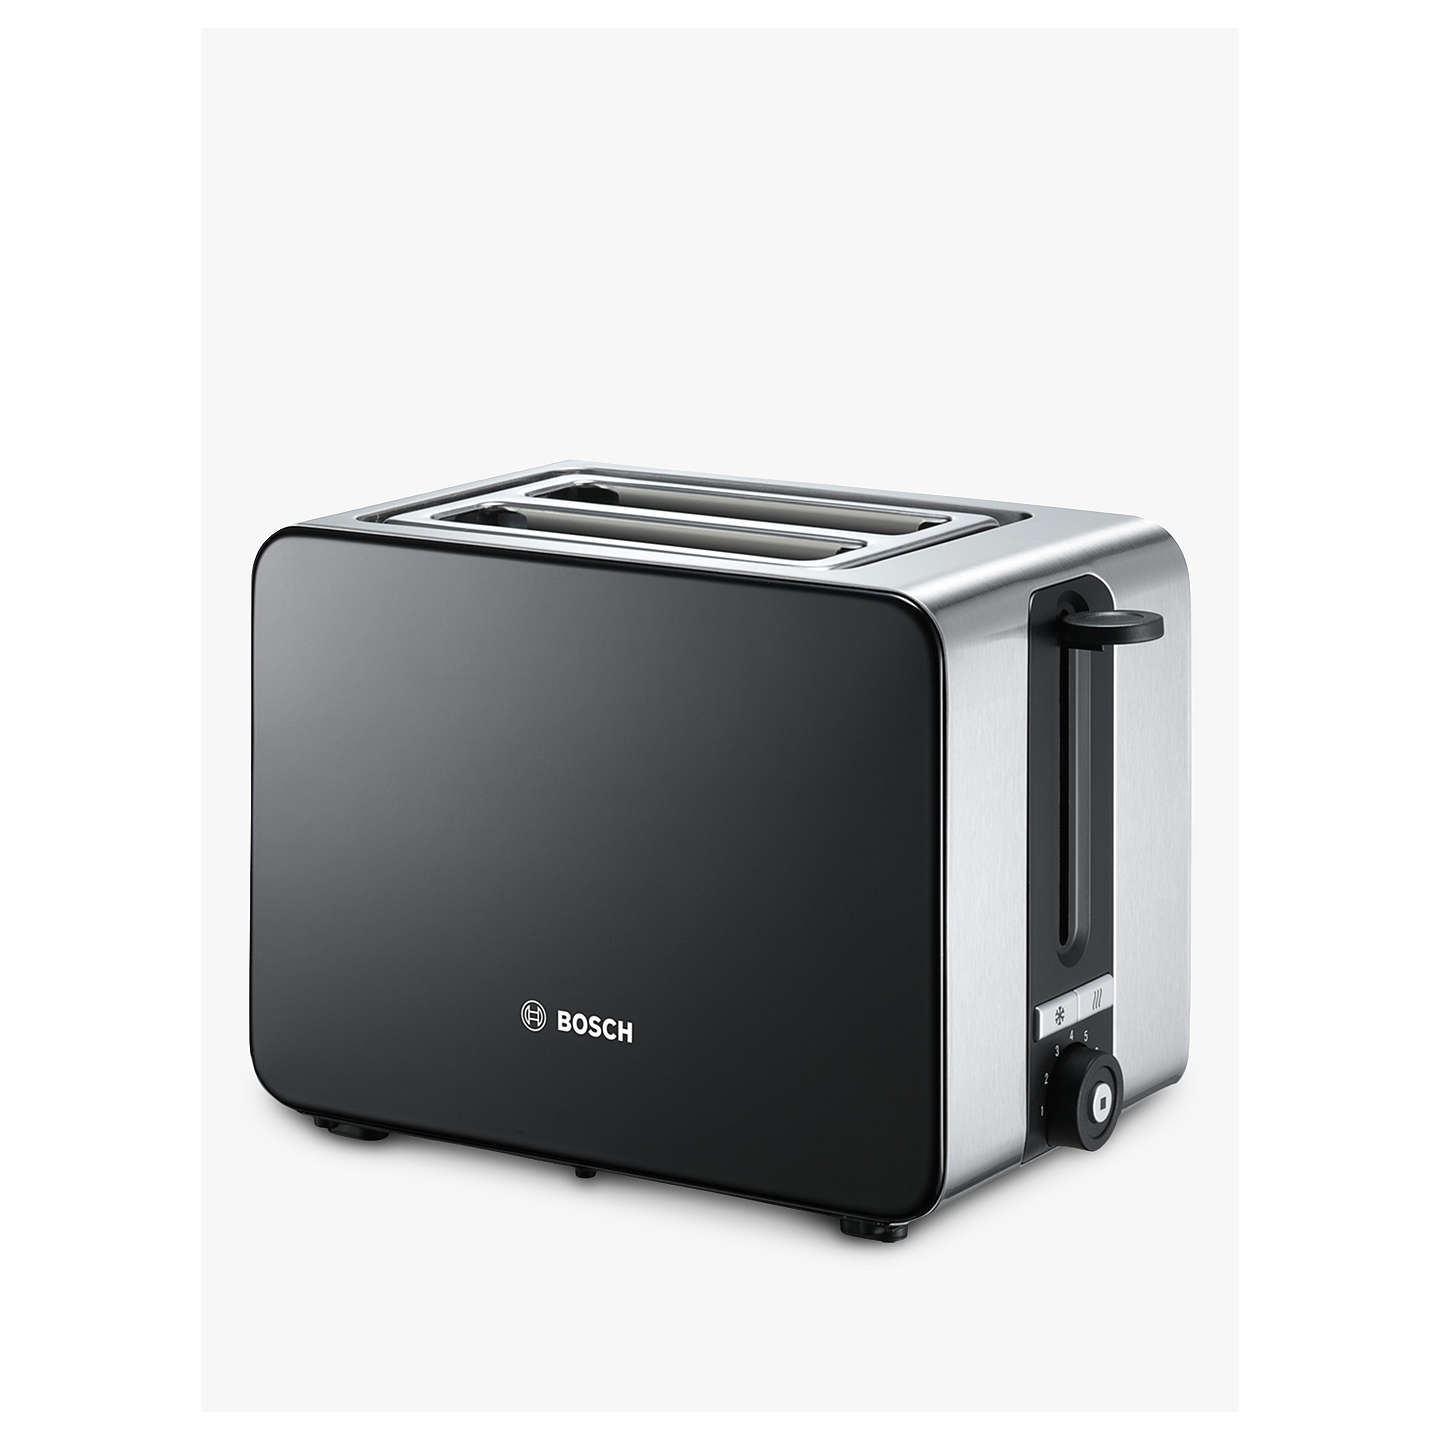 toasters toaster beach p hamilton chrome modern slice ebay s of picture